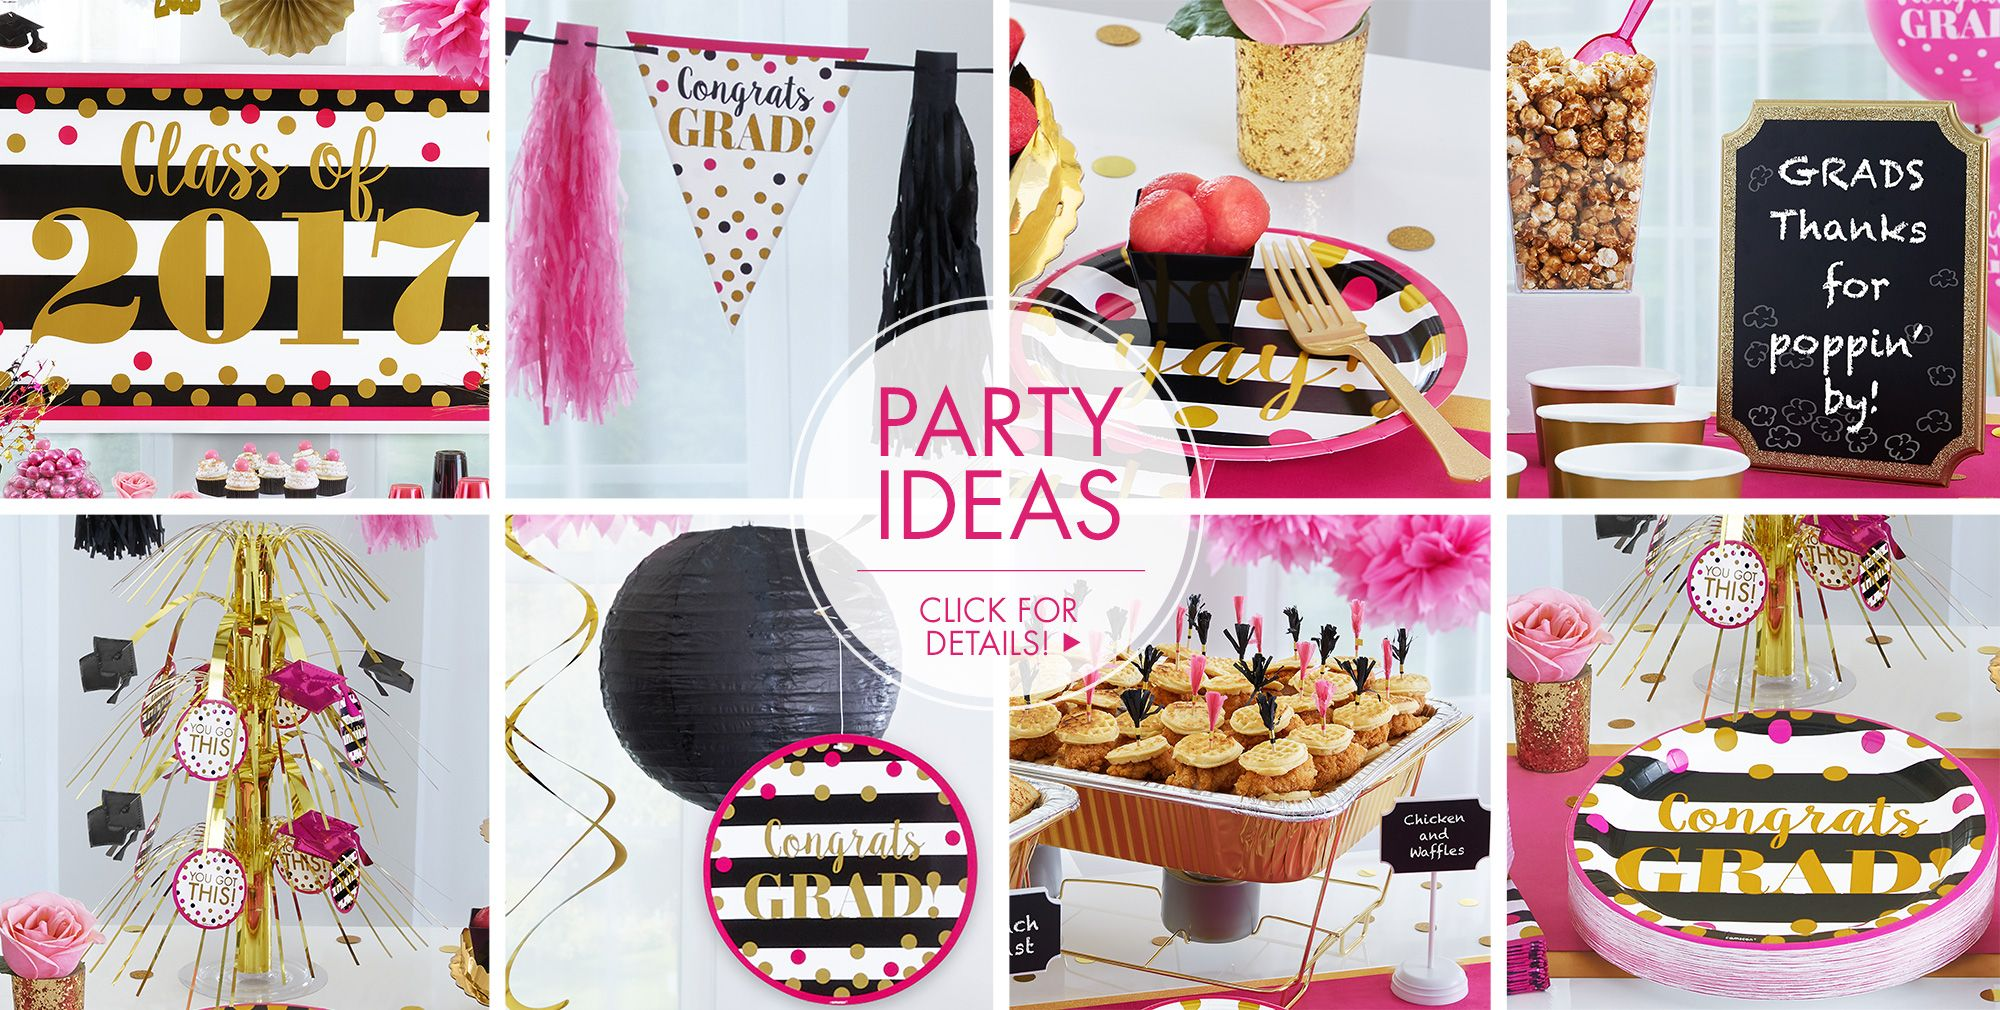 Pink & Black Graduation Party Supplies  Party City. Free Professional Resume Template. University Of Florida Graduate Application. Roblox Designing Template. Freelance Invoice Template Word. Dresses For Graduation 8th Grade. Wedding Ceremony Timeline Template. Easy Excel Budget Template. Program To Create Flyers